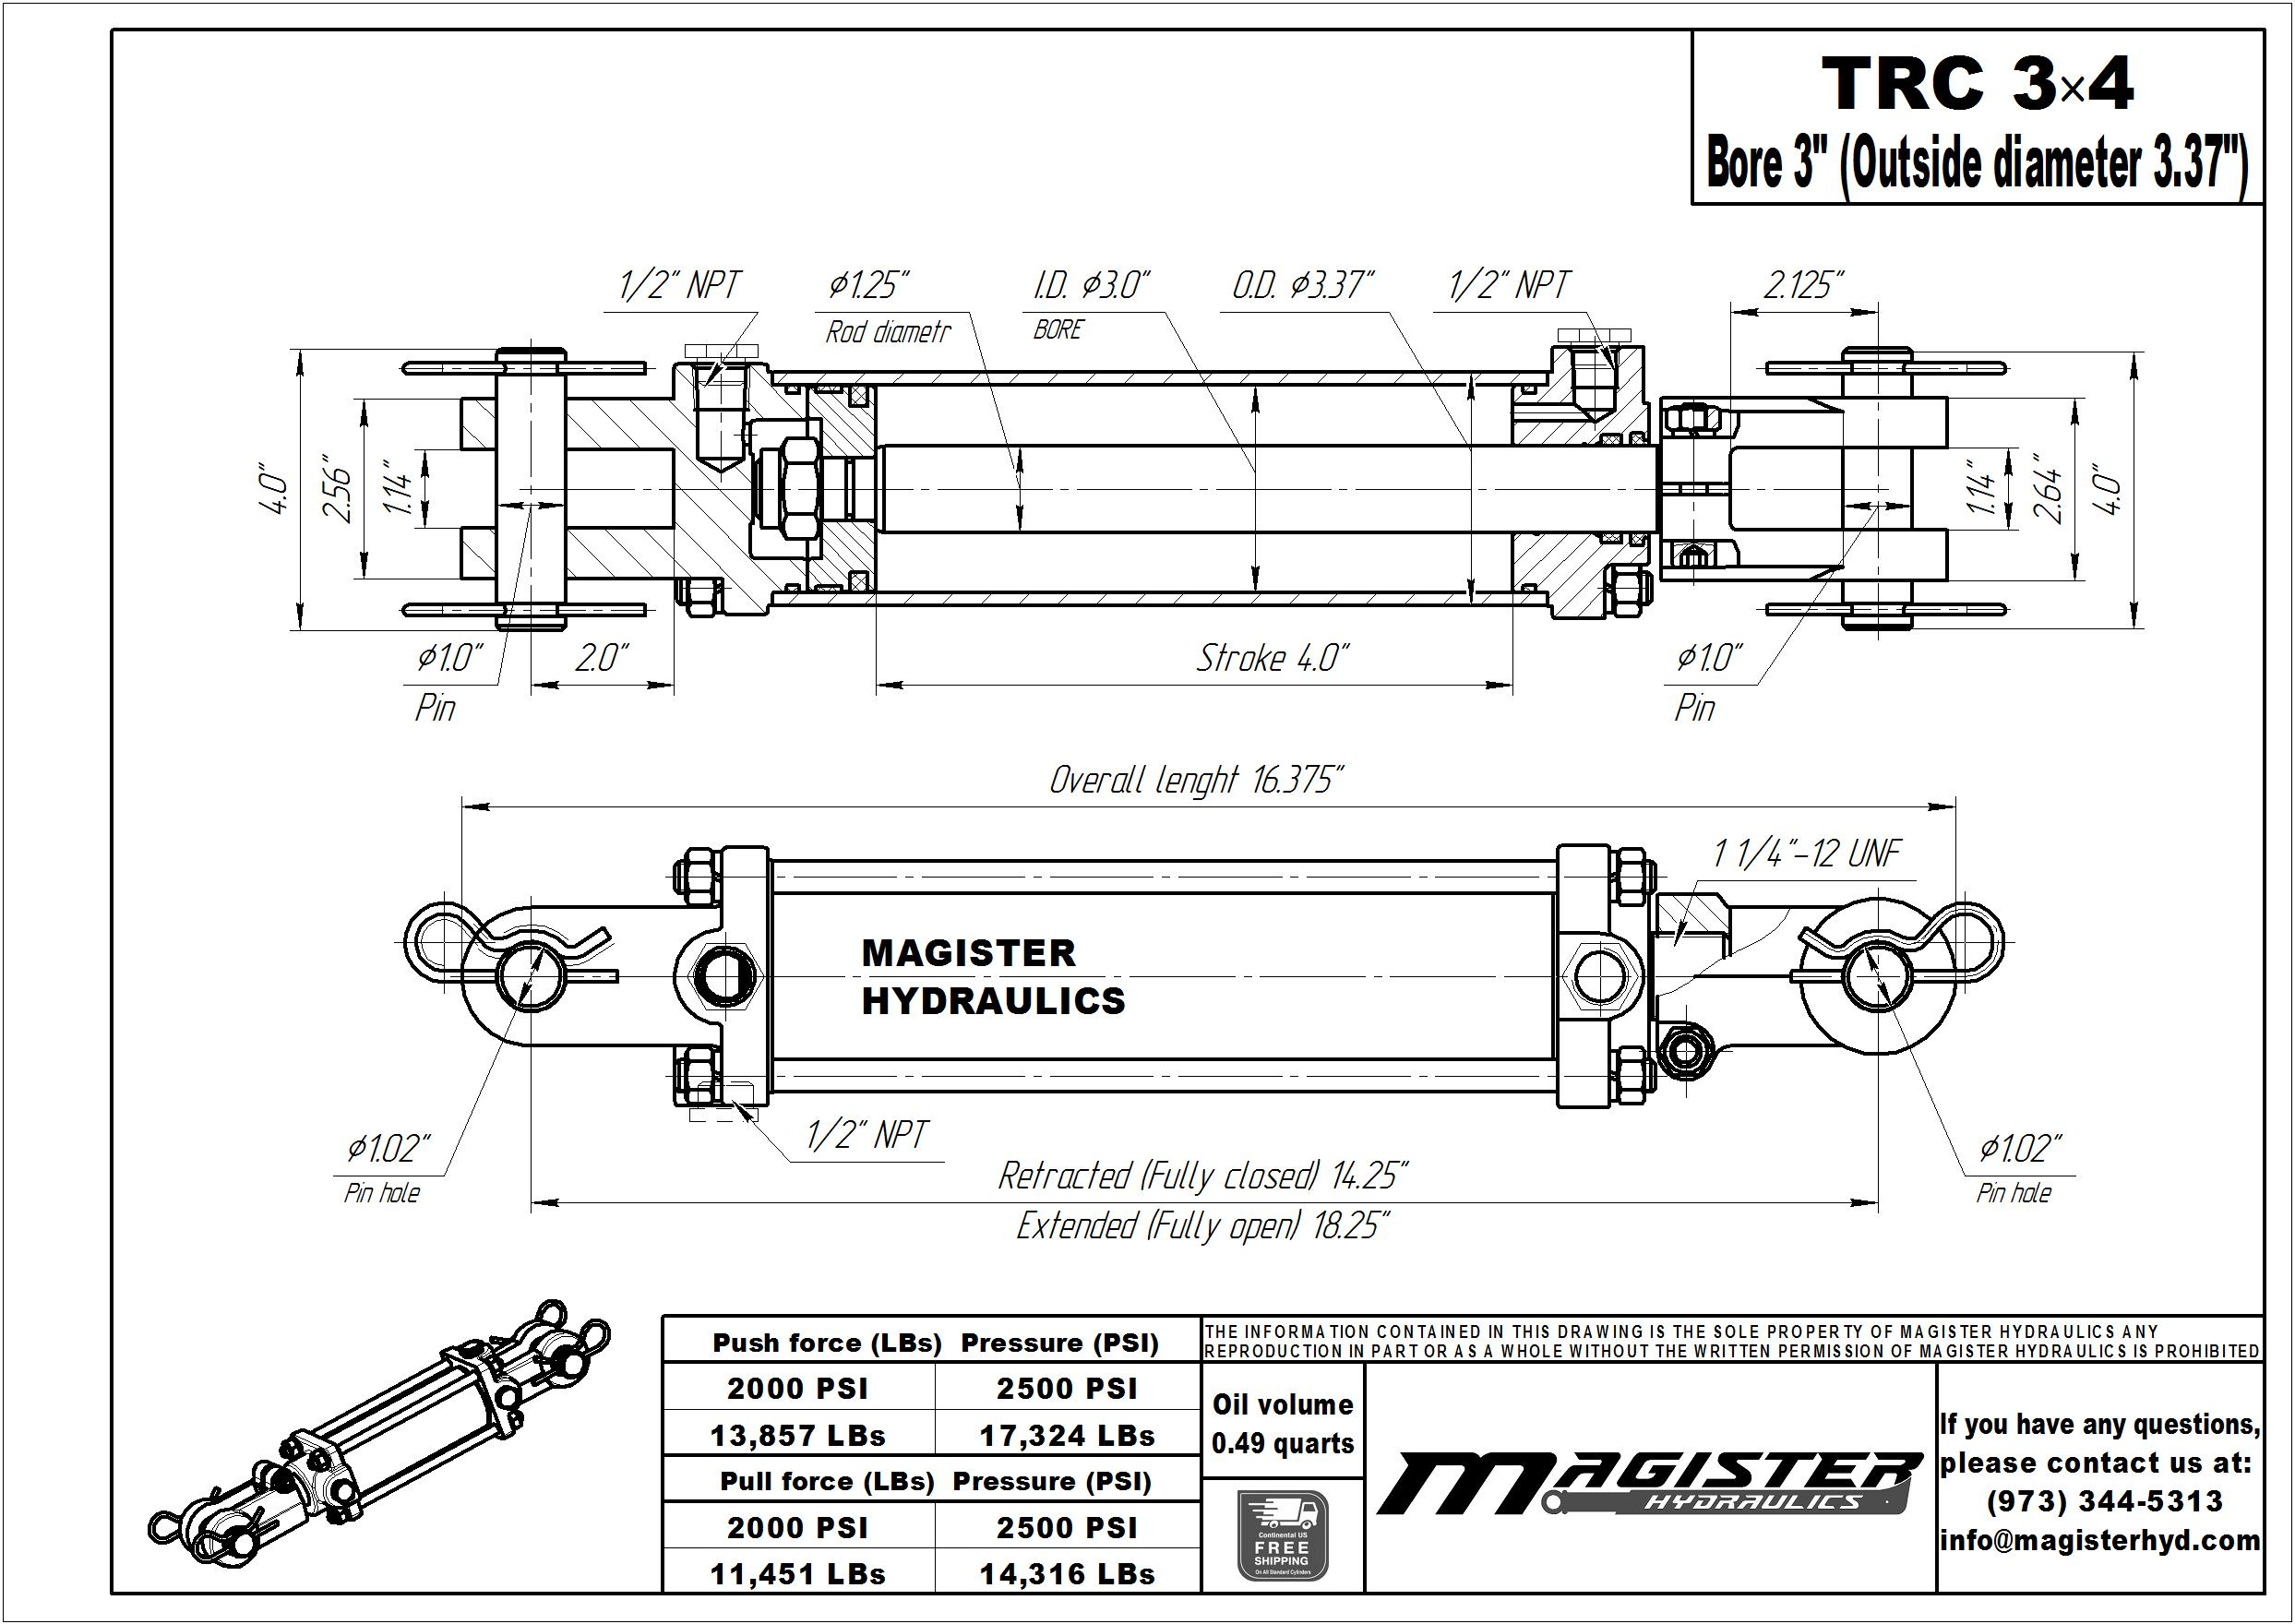 3 bore x 4 stroke hydraulic cylinder, tie rod double acting cylinder | Magister Hydraulics